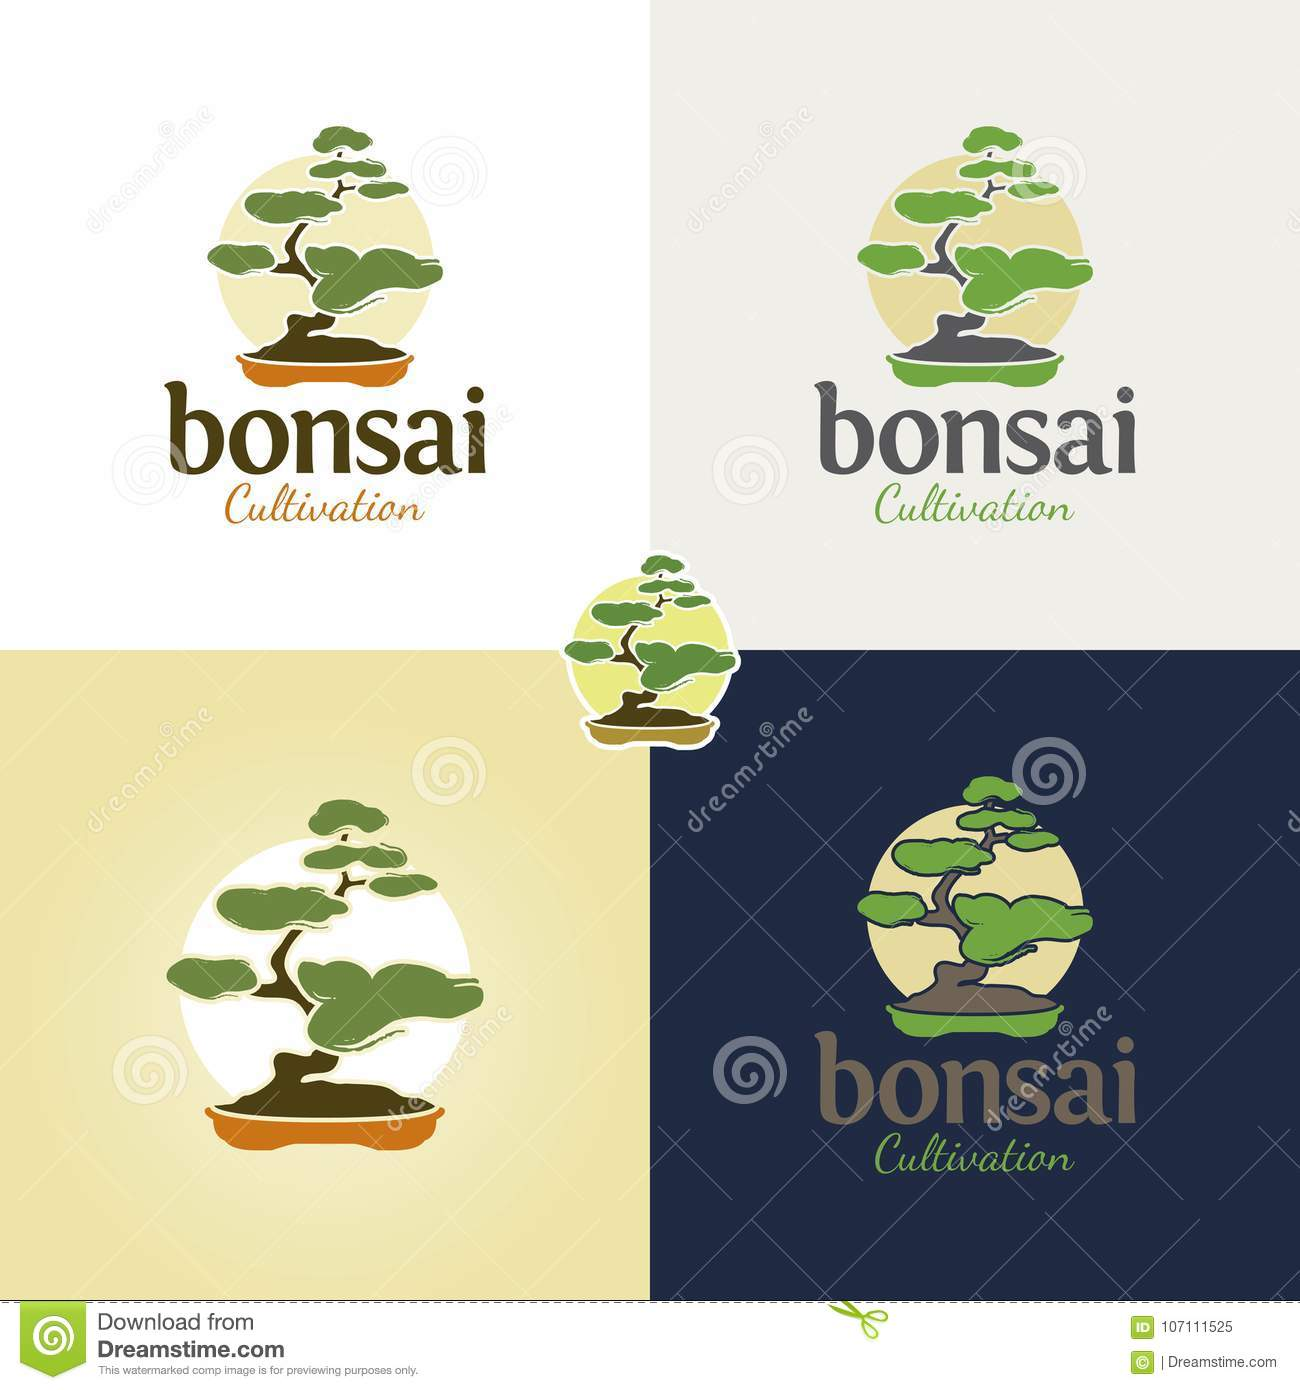 Bonsai Logo And Icon Vector Illustration Stock Vector Illustration Of Mind Peaceful 107111525